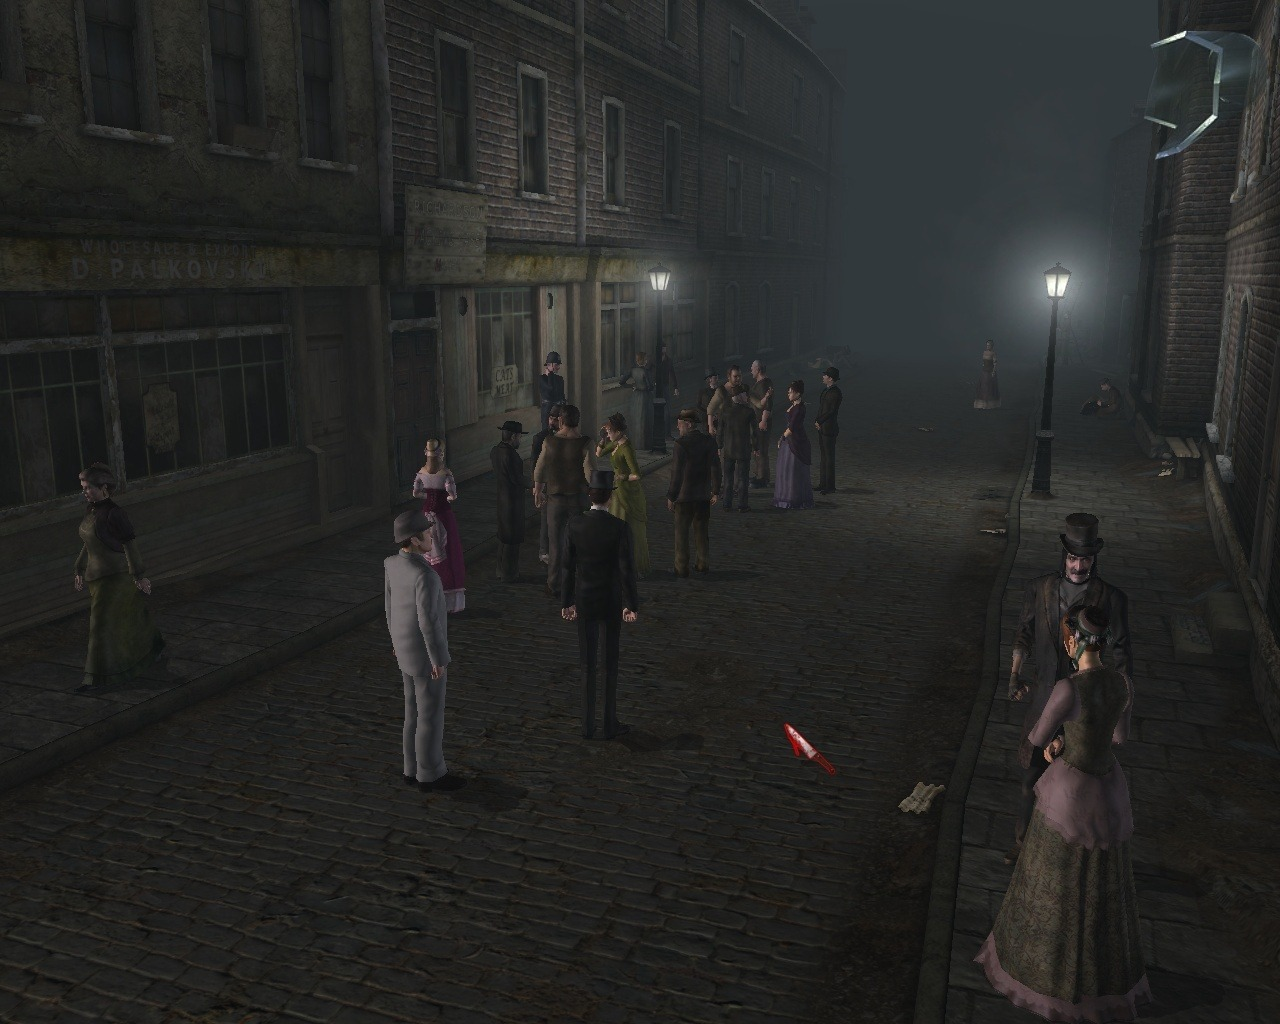 Plane Fighting Games >> Download Sherlock Holmes VS Jack The Ripper Game Full Version For Free